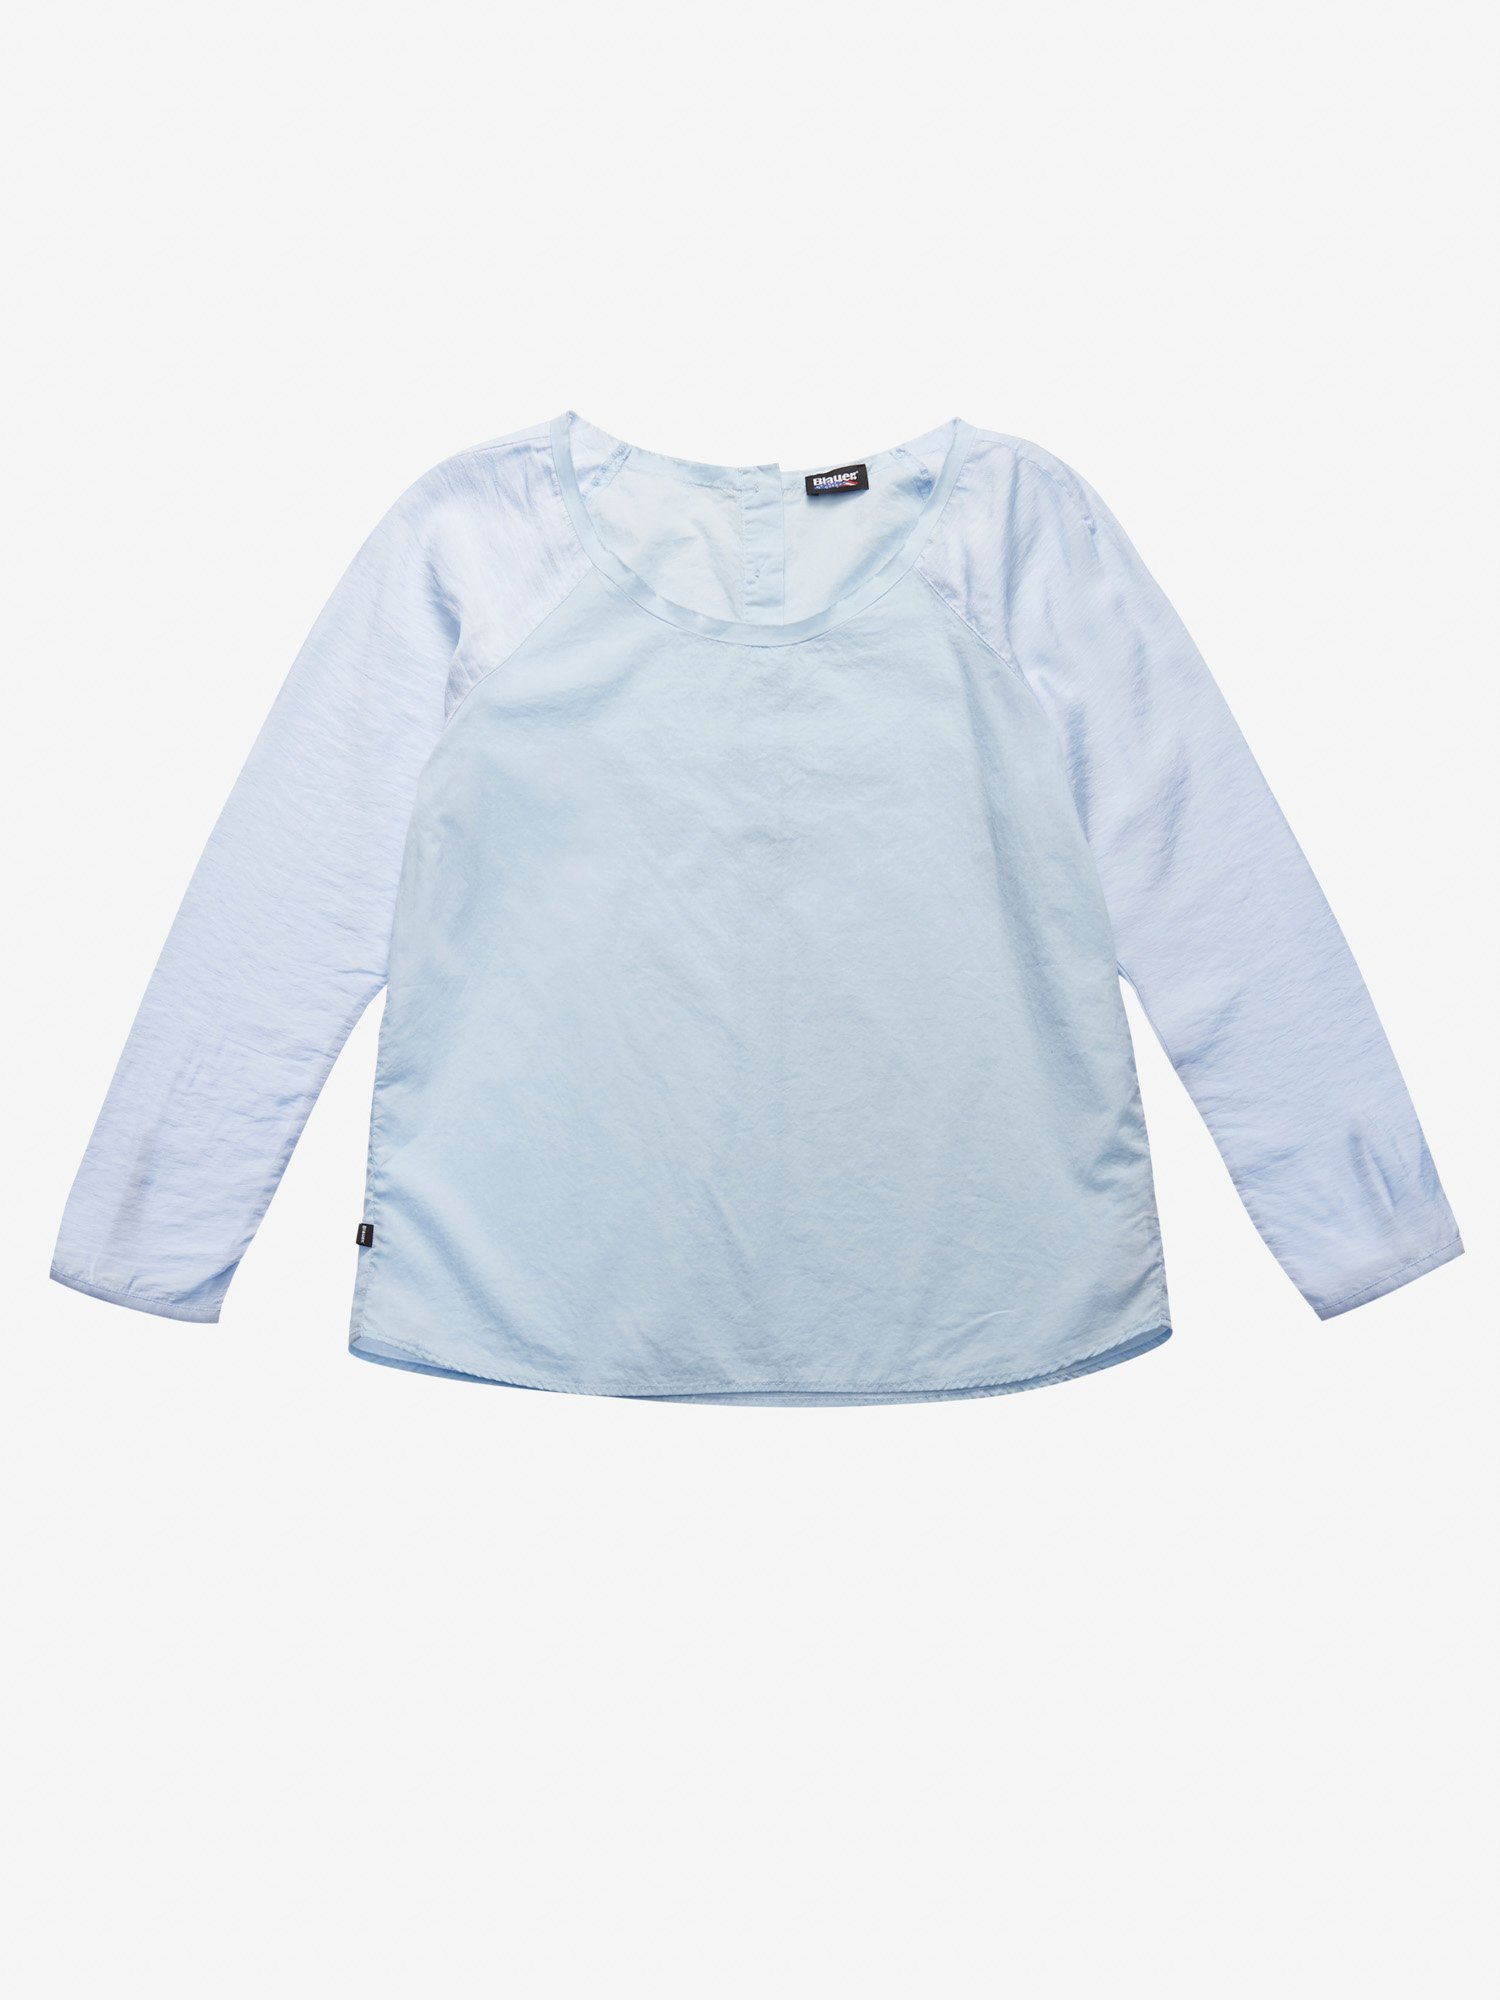 COTTON AND VISCOSE MUSLIN SHIRT - Blauer